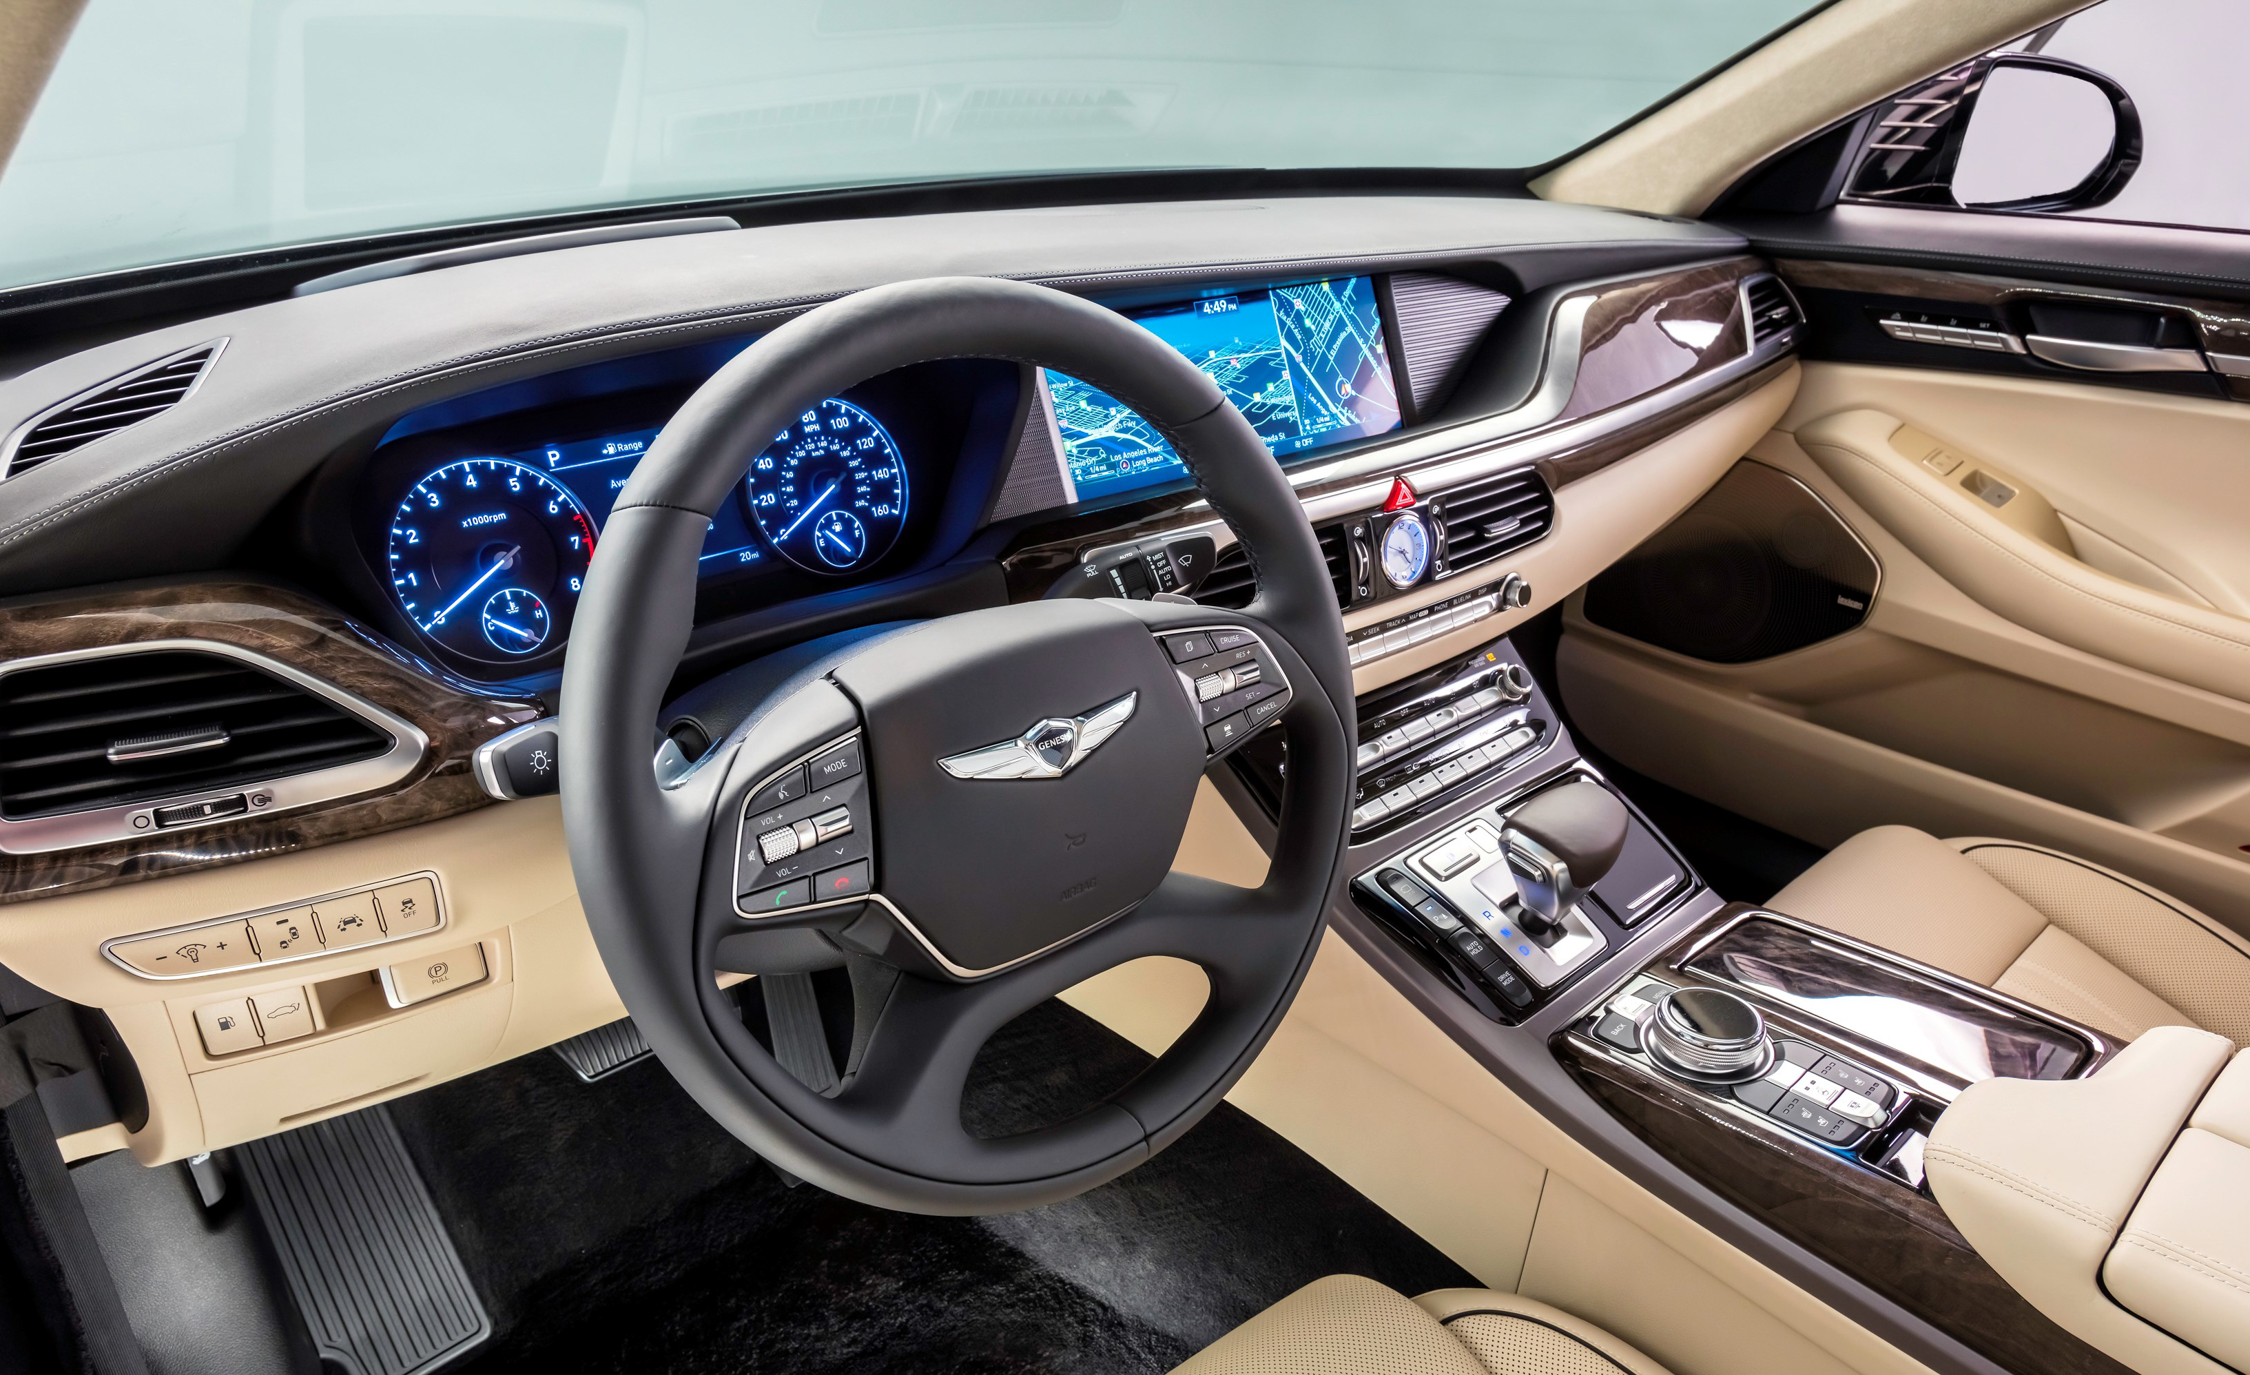 2017 Genesis G90 Interior Dashboard (Photo 11 of 19)